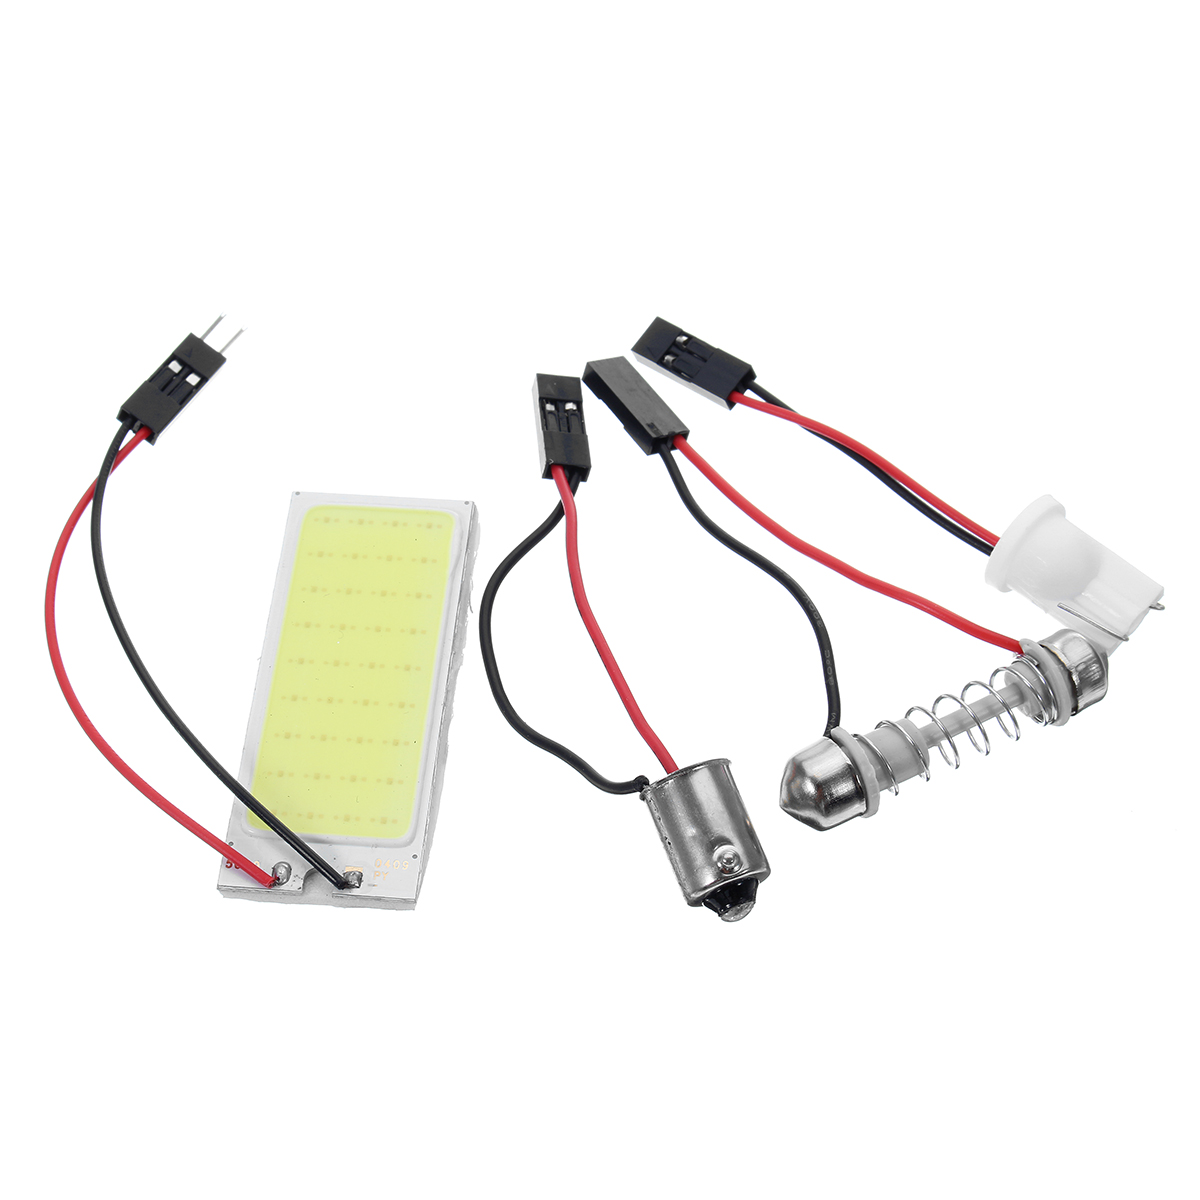 1Pcs 1.2W White 24Chips COB LED Car License Plate Lights with T10 BA9S Festoon Dome Adapter